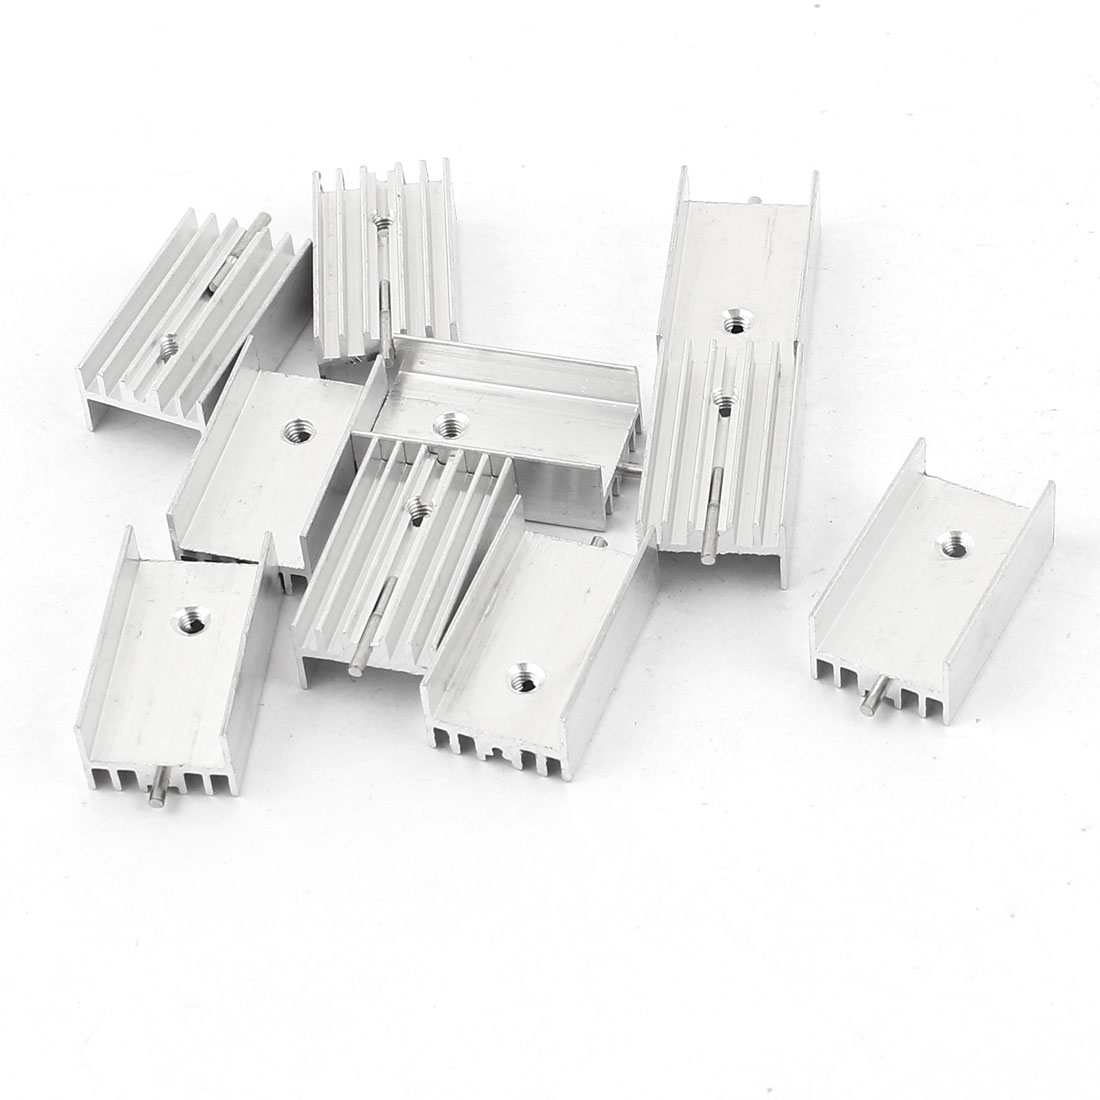 10 Pcs Screw Mount Aluminum Heatsink Heat Sink Radiator Cooling Cooler Fin w Needle 25mmx15mmx10mm Silver Tone for Mosfet IC